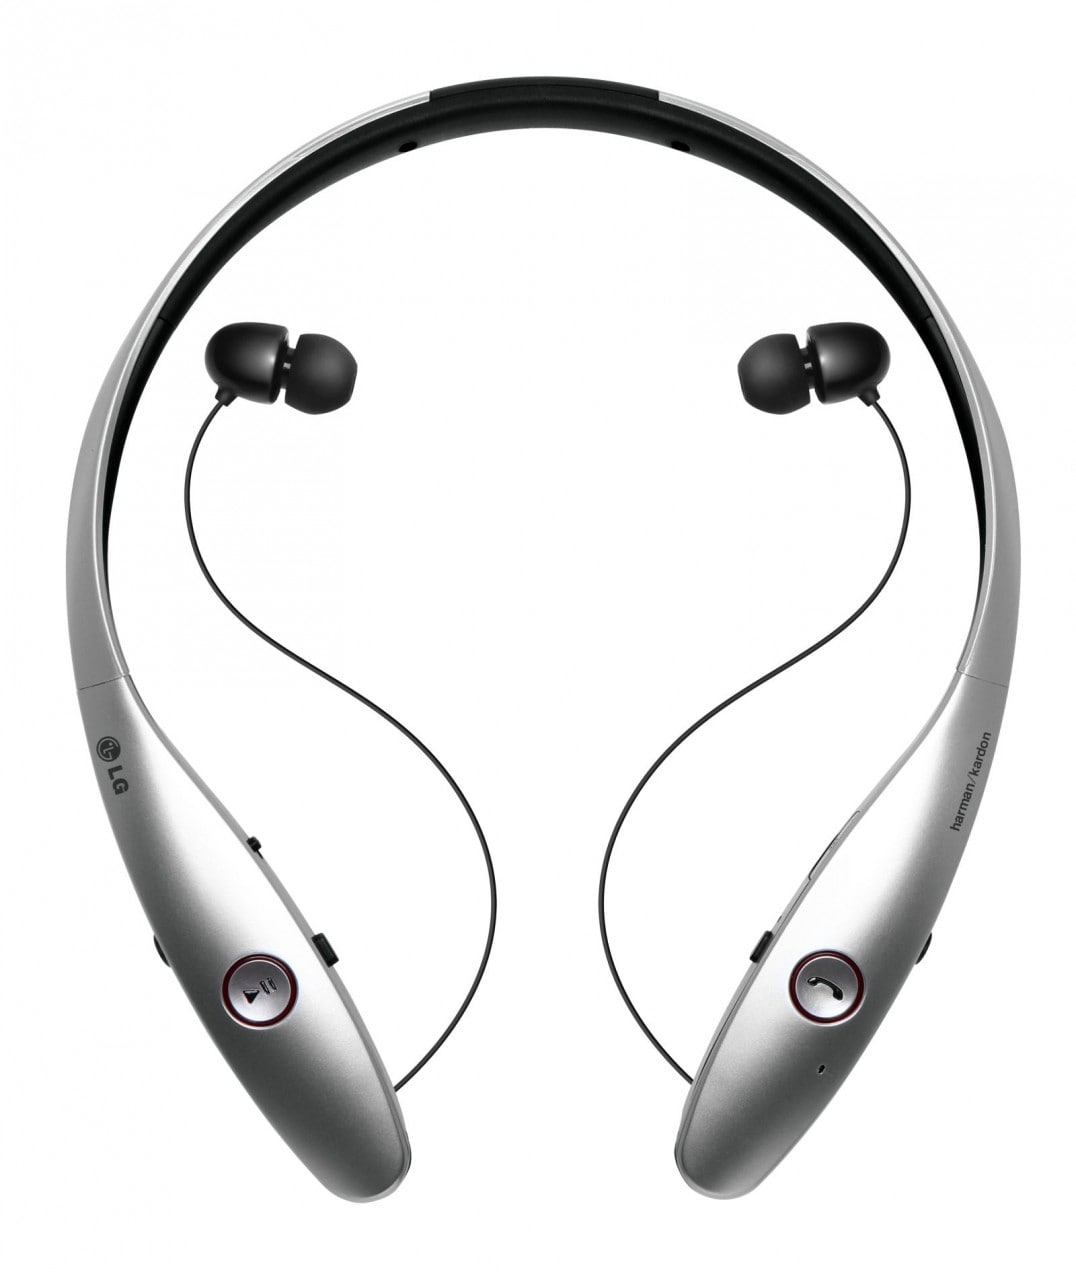 LG-Tone-Infinim-Bluetooth-headphones-with-HarmanKardon-audio-tech